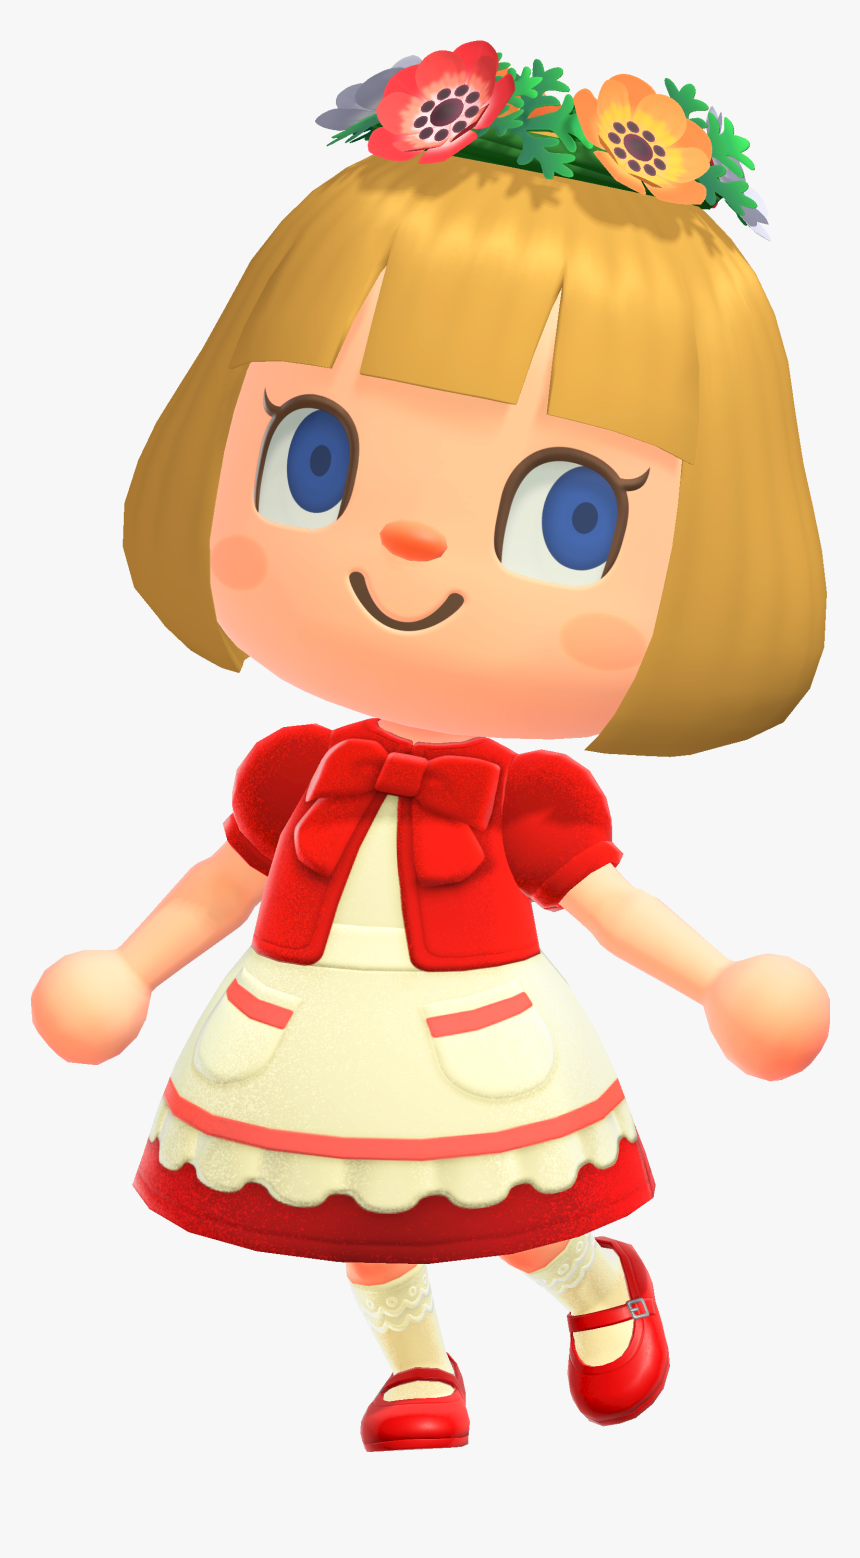 Animal Crossing New Horizons Characters Hd Png Download Kindpng